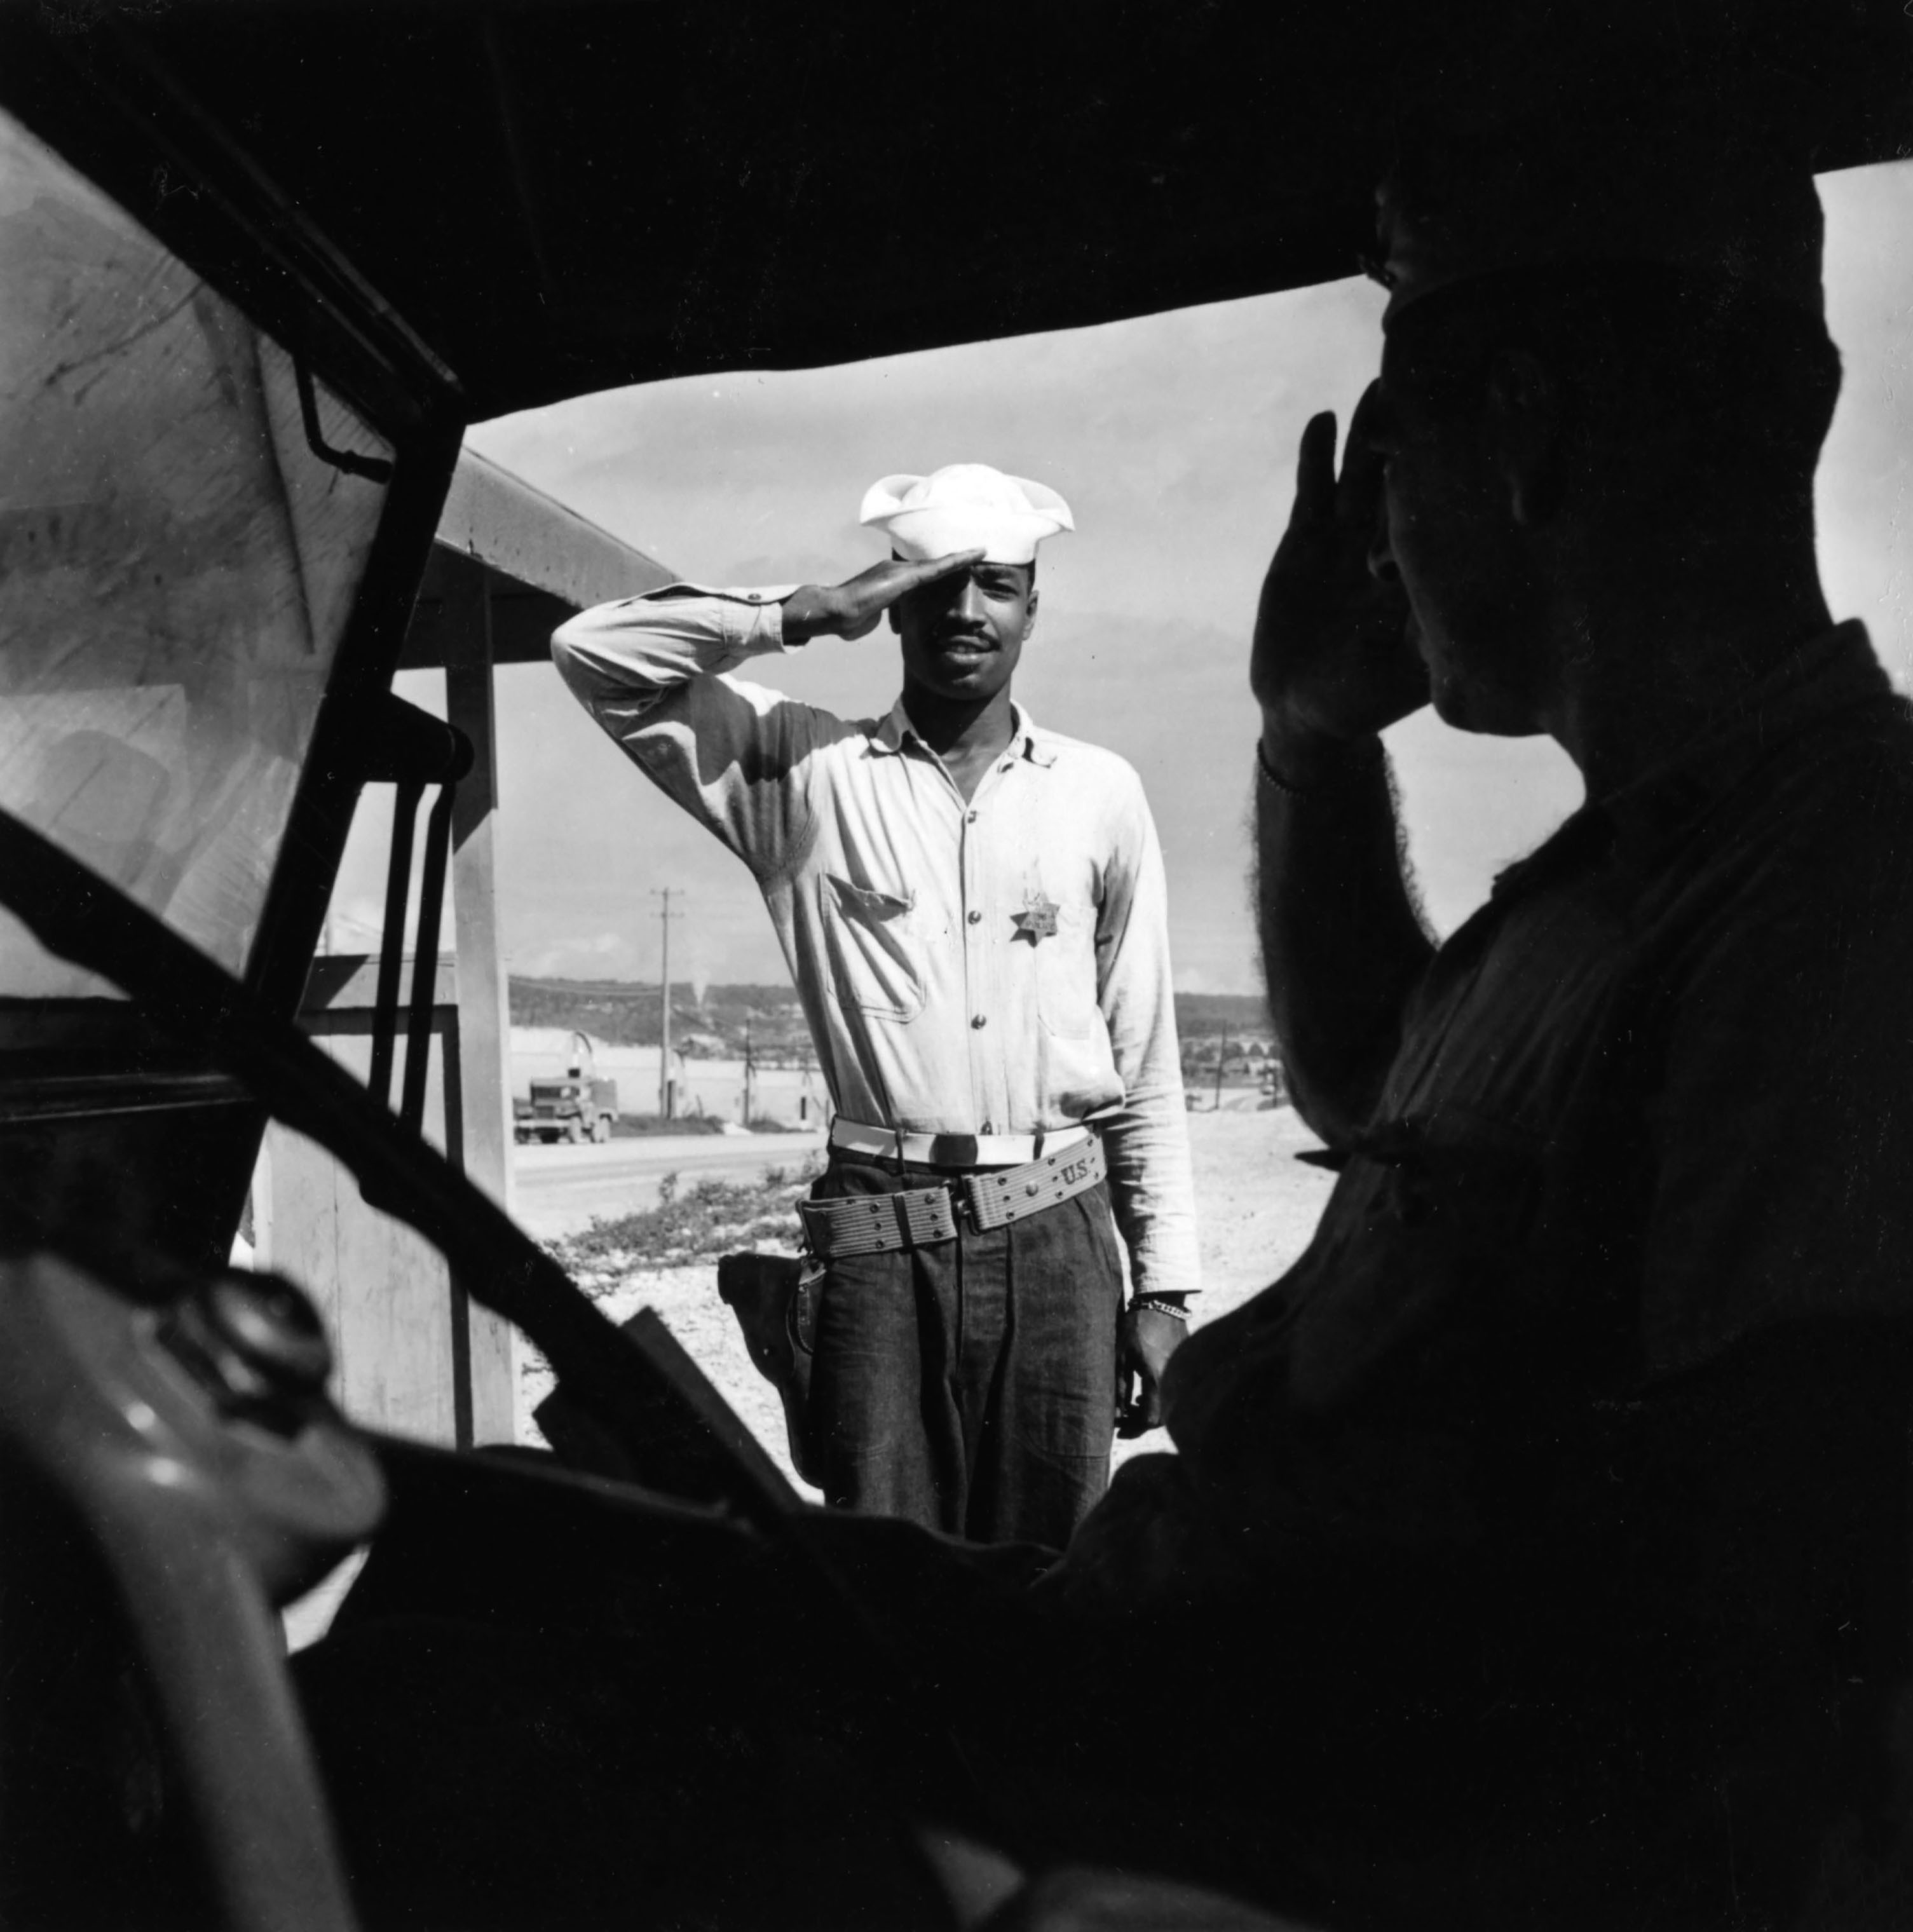 A sailor assigned to work as a laborer at the U.S. Naval Supply Depot on Guam saluting an officer.